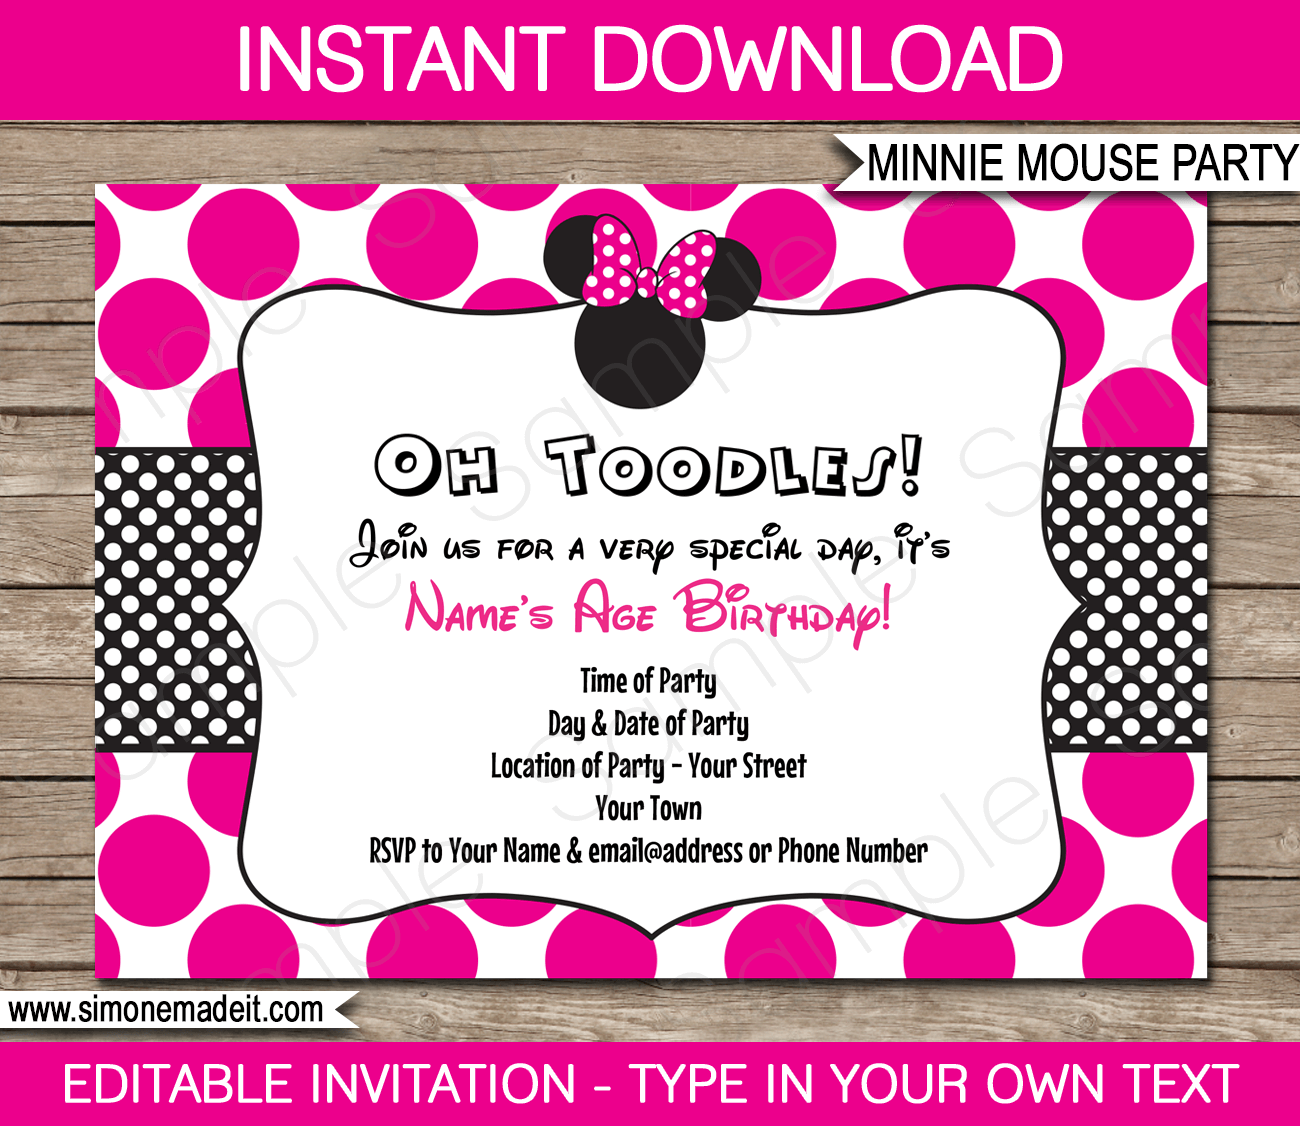 Minnie mouse party invitations template birthday party minnie mouse party invitations birthday party editable diy theme template instant download 750 filmwisefo